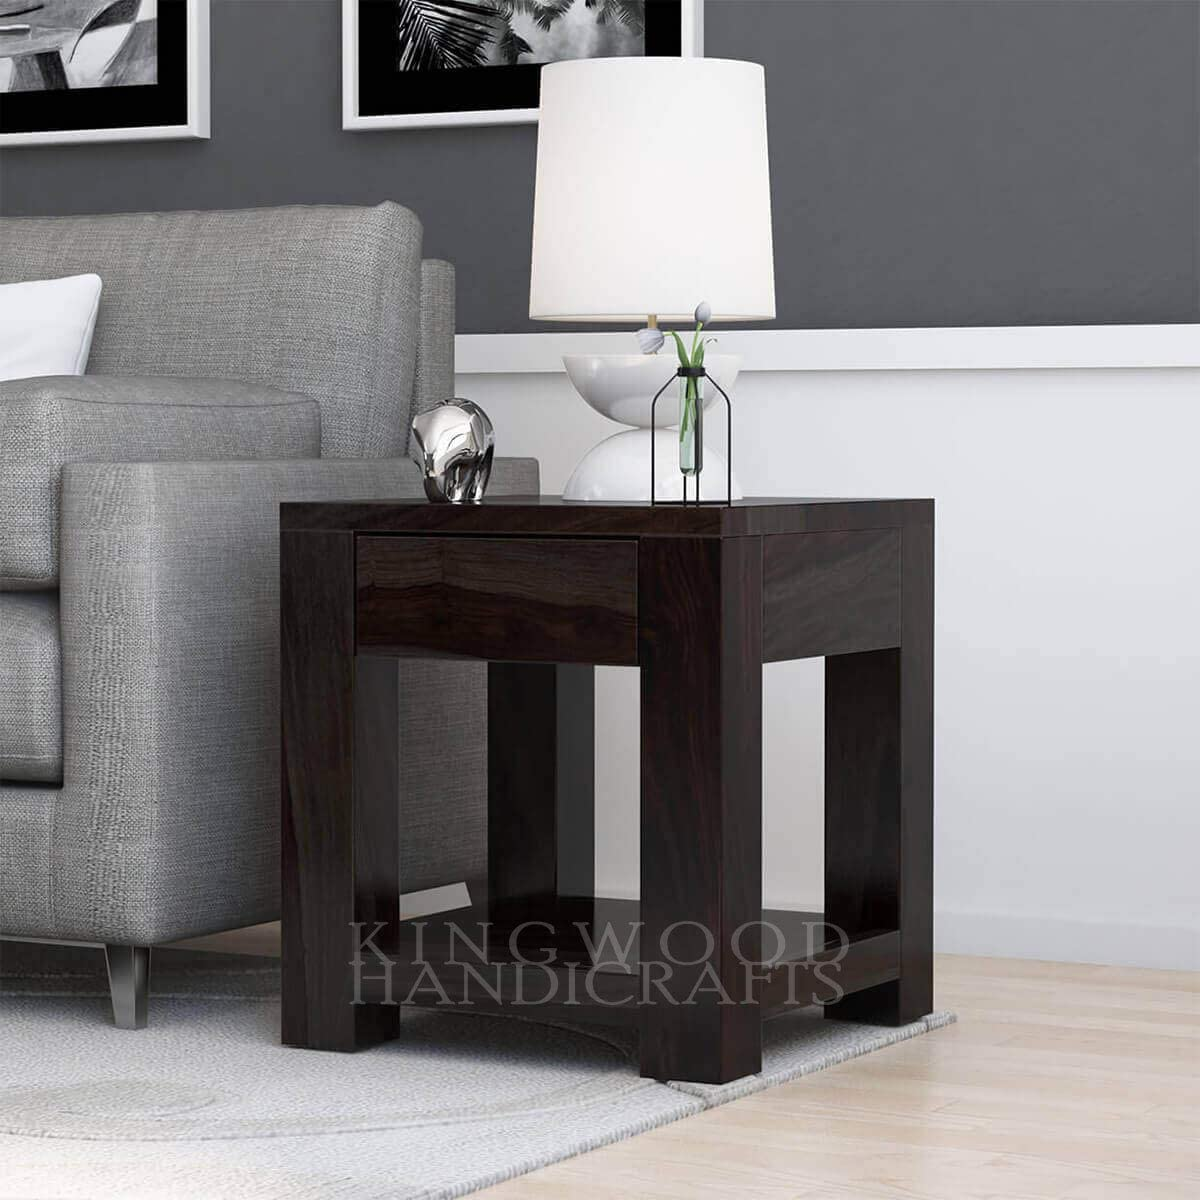 Kingwood Single Drawer Side End Table in Sheesham Wood with Walnut Finish - Size 16 x 14 x 20 Inches